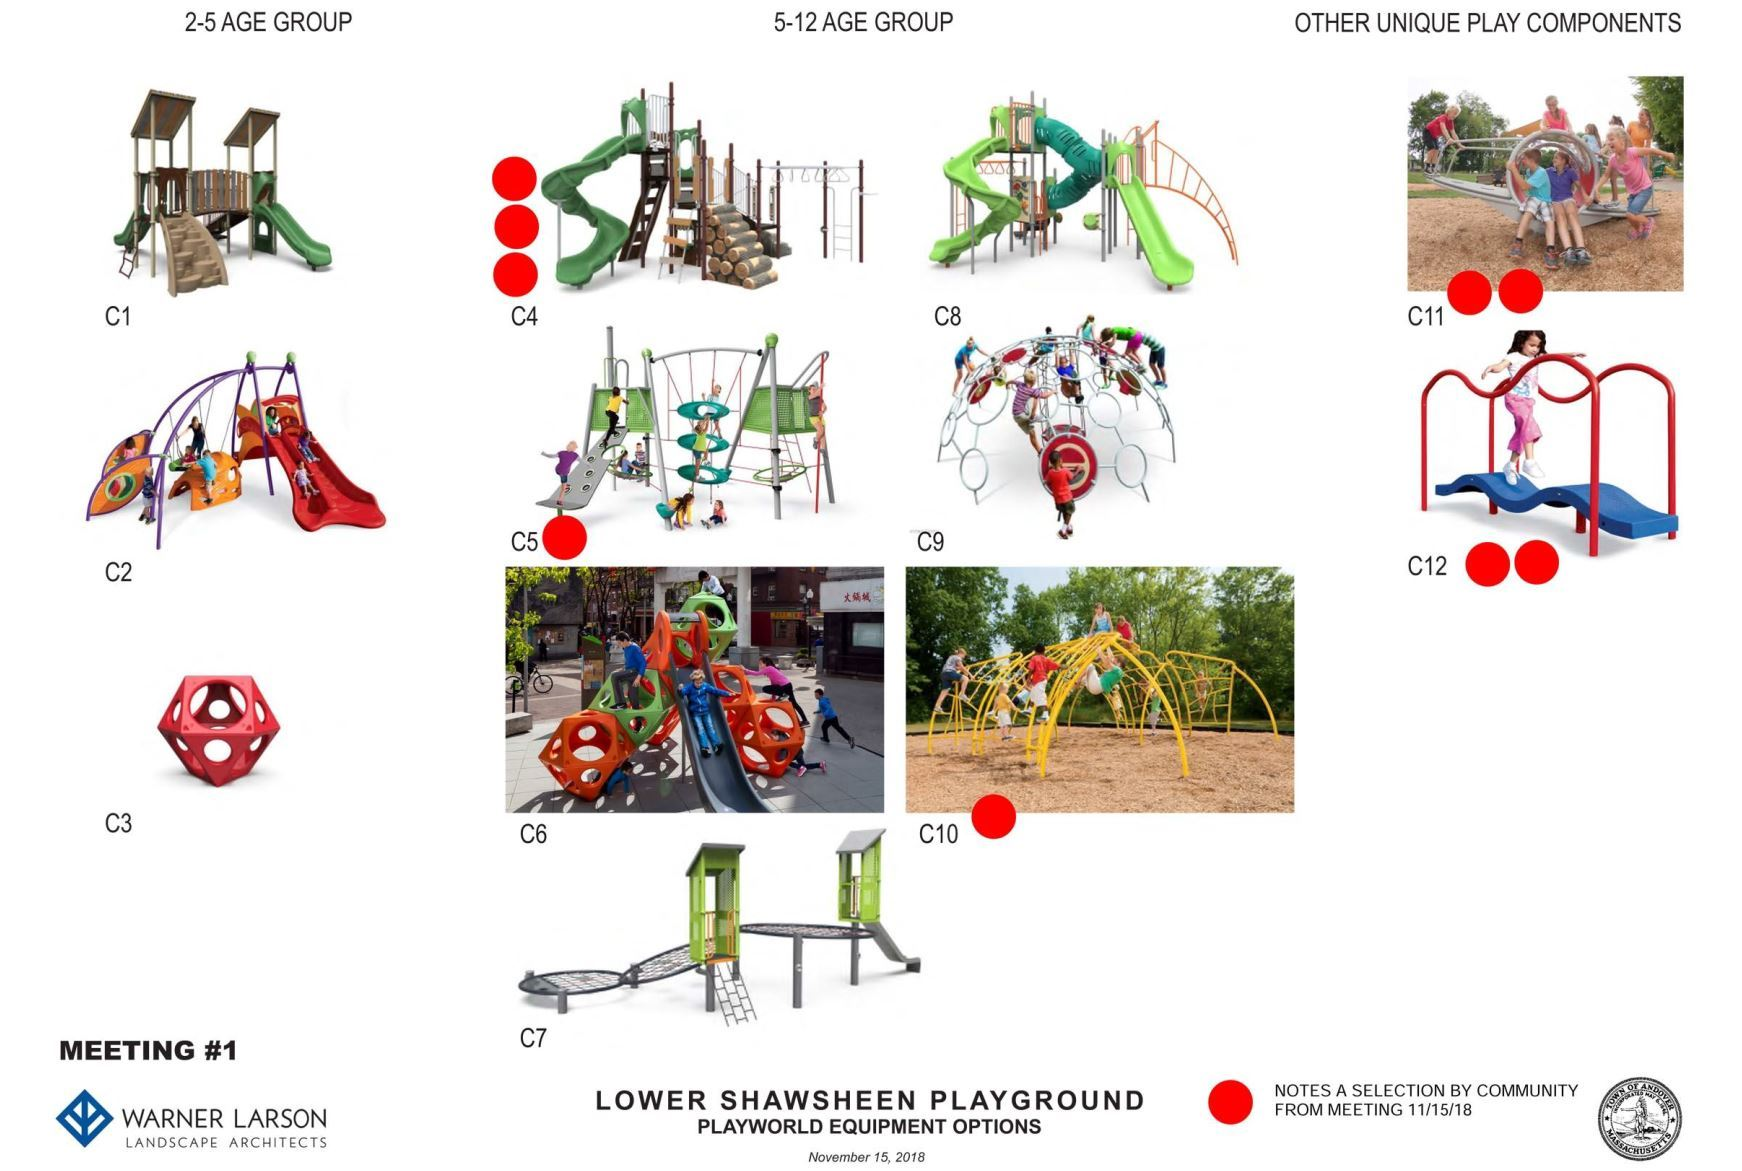 Playground Options C